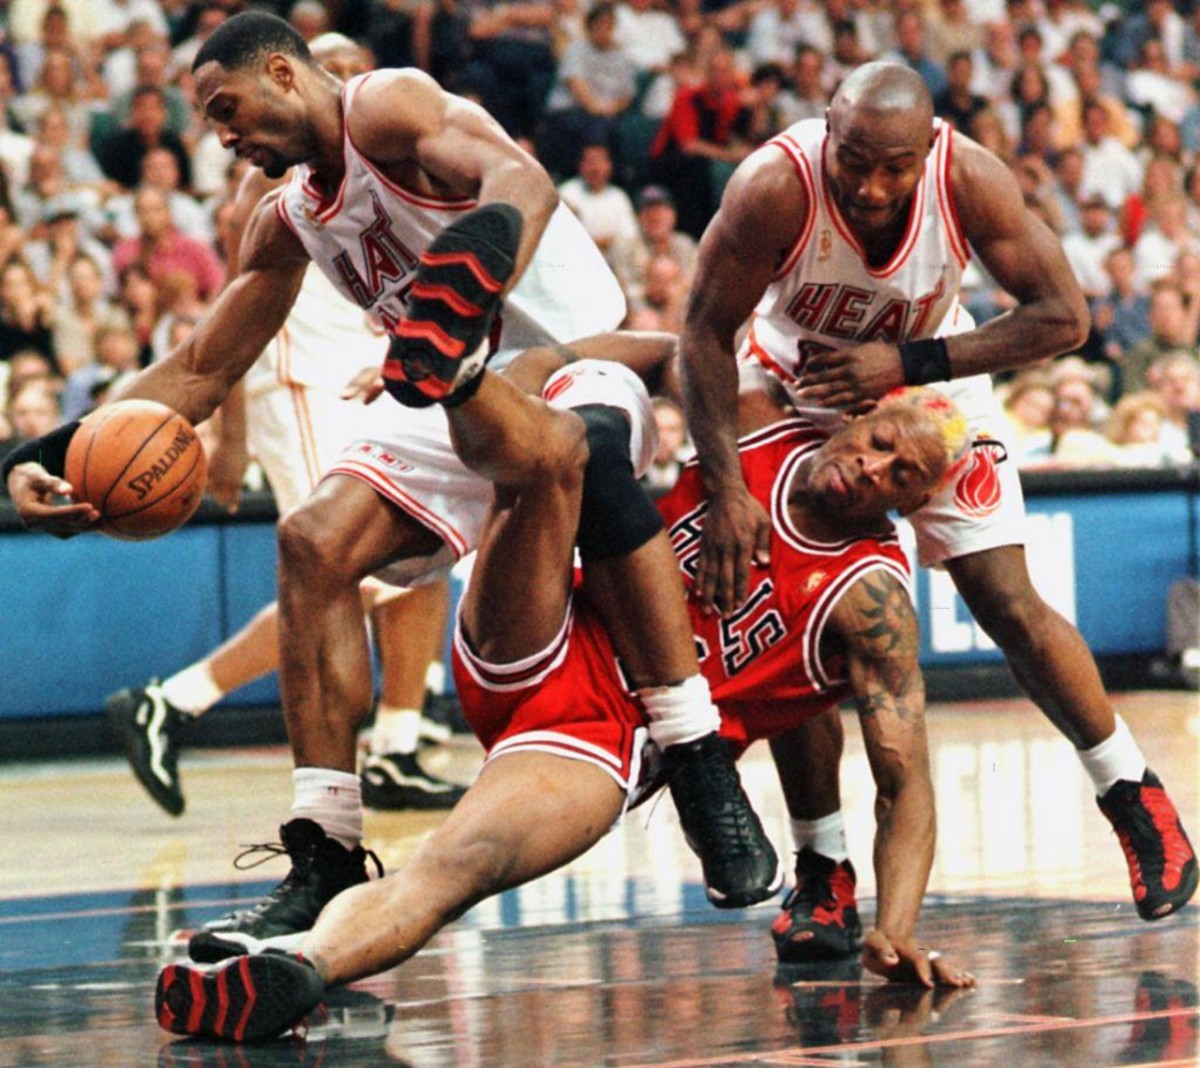 Dennis Rodman vs. Alonzo Mourning and Tim Hardaway